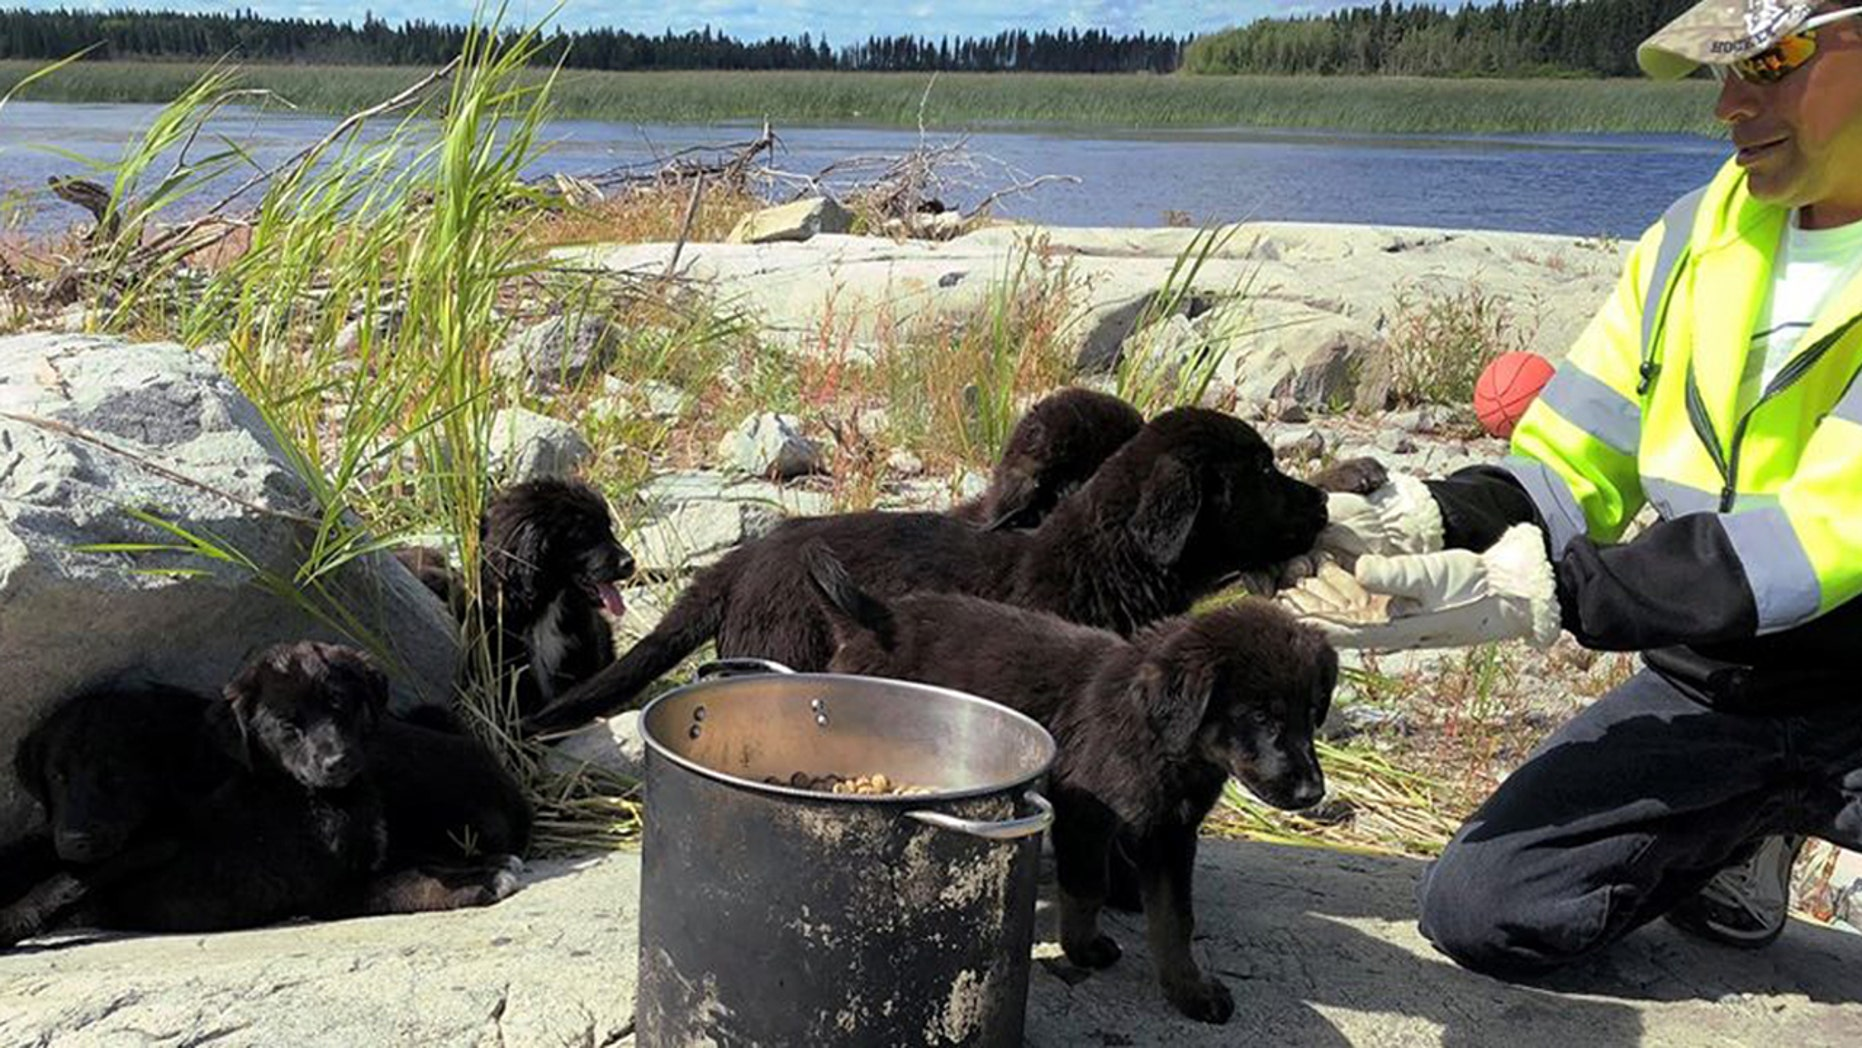 Seven puppies found on a remote island in Canada this week were to be transferred to an animal rescue facility, officials said.